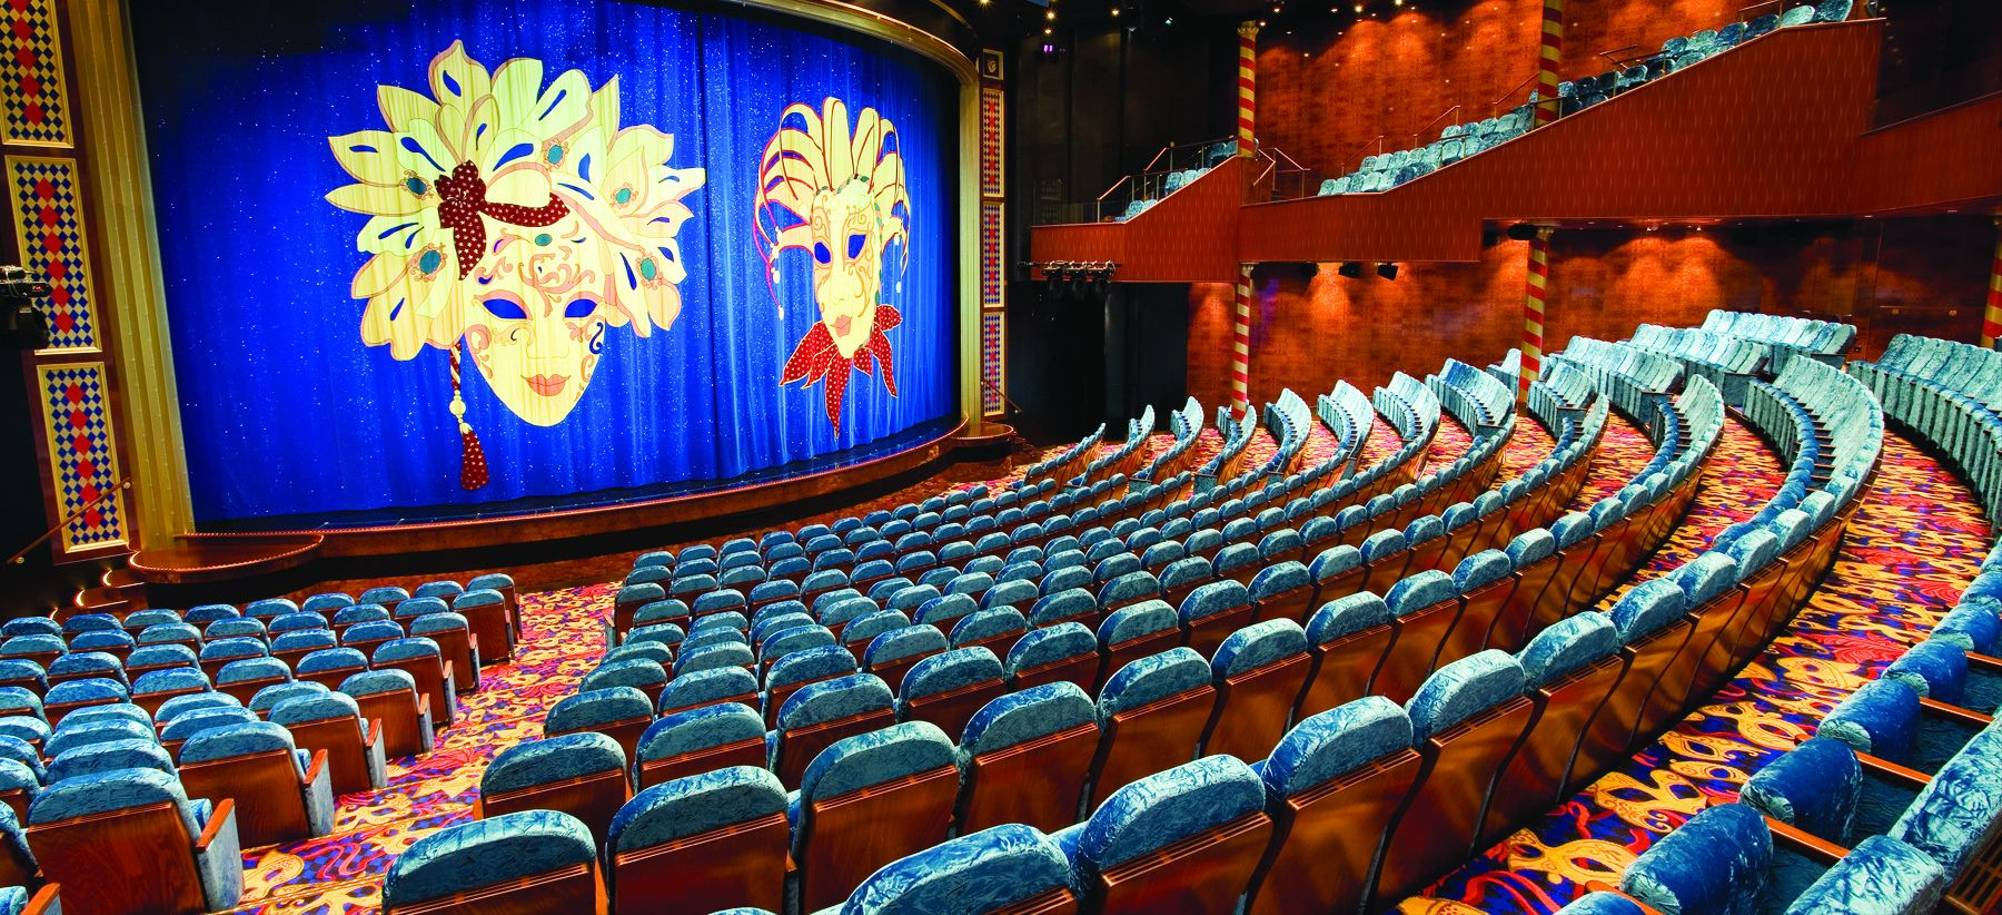 Stardust Theater - Deck 6 Pride of Hawaii - Norwegian Cruise Line